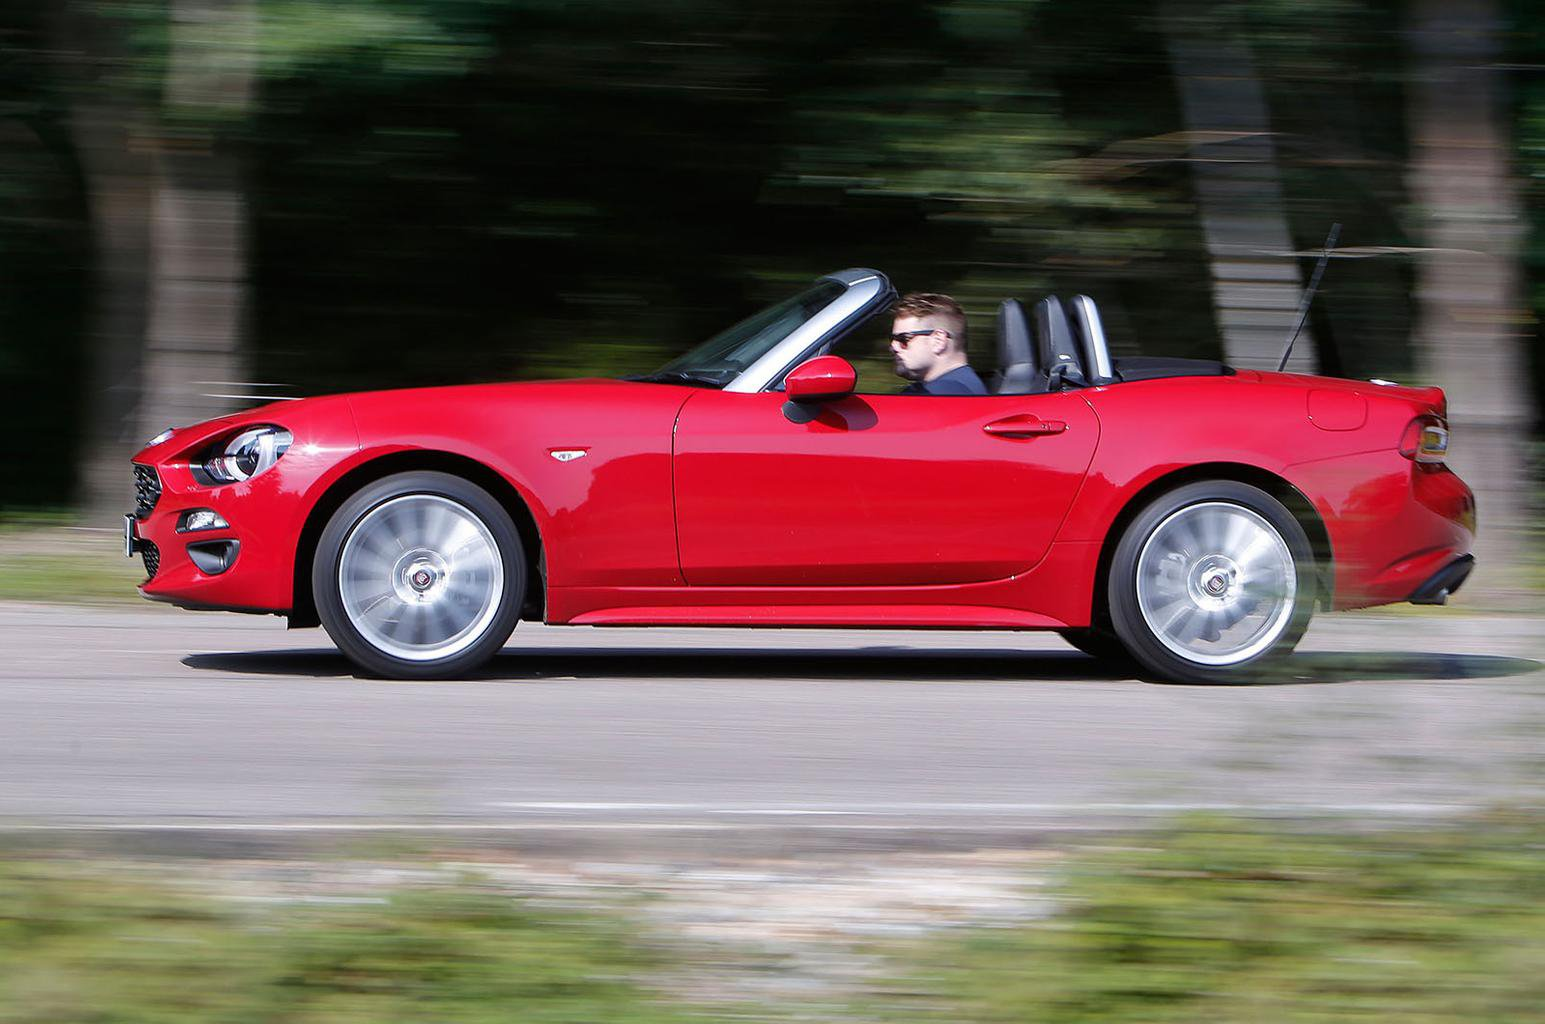 Used Fiat 124 Spider 16-present